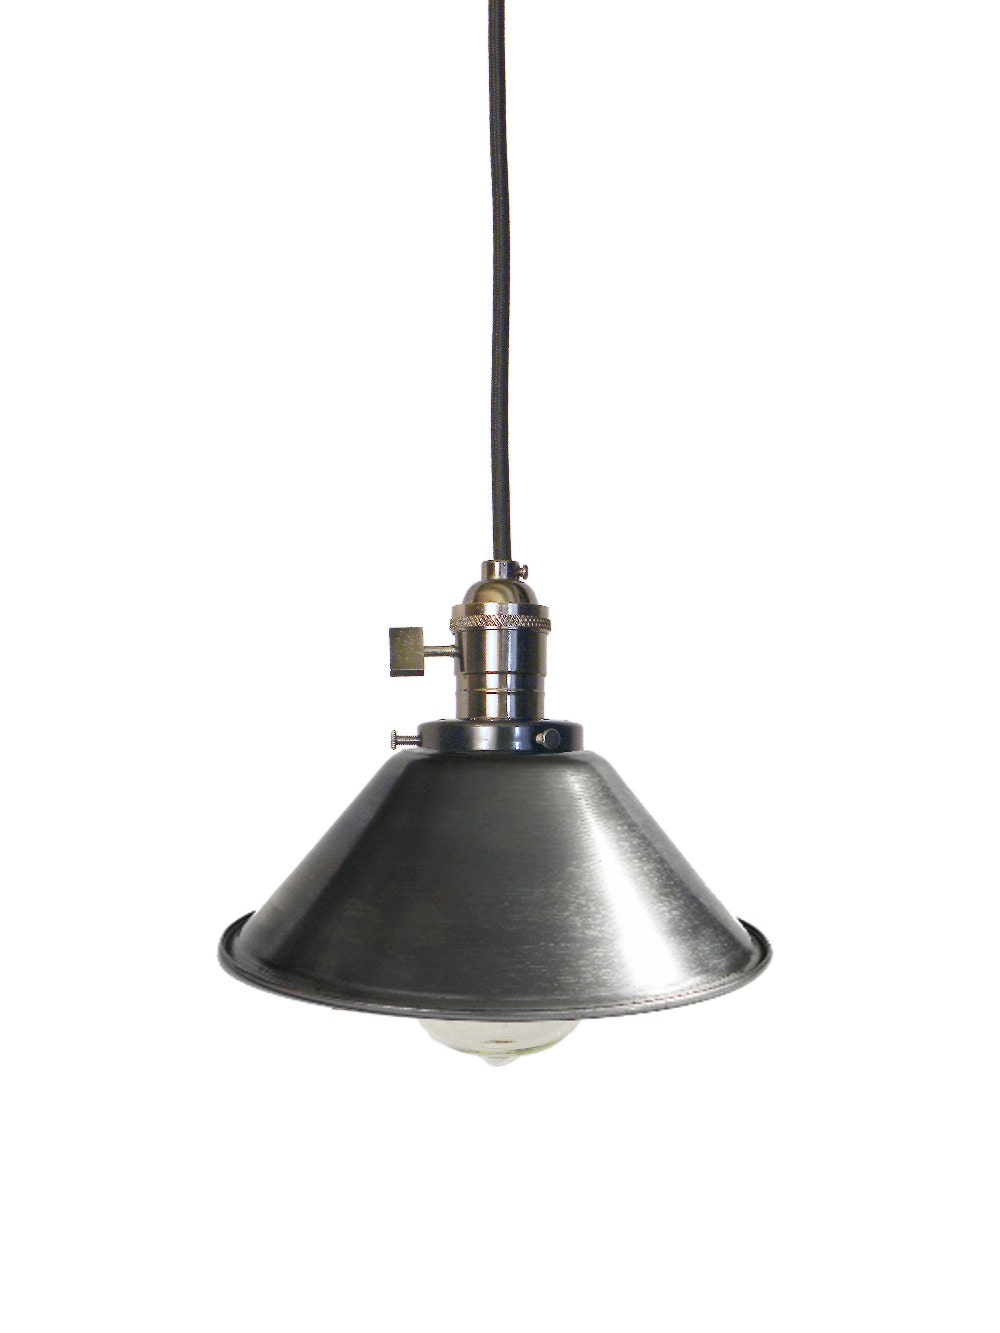 steel cone shade pendant lighting mix and match any hardware